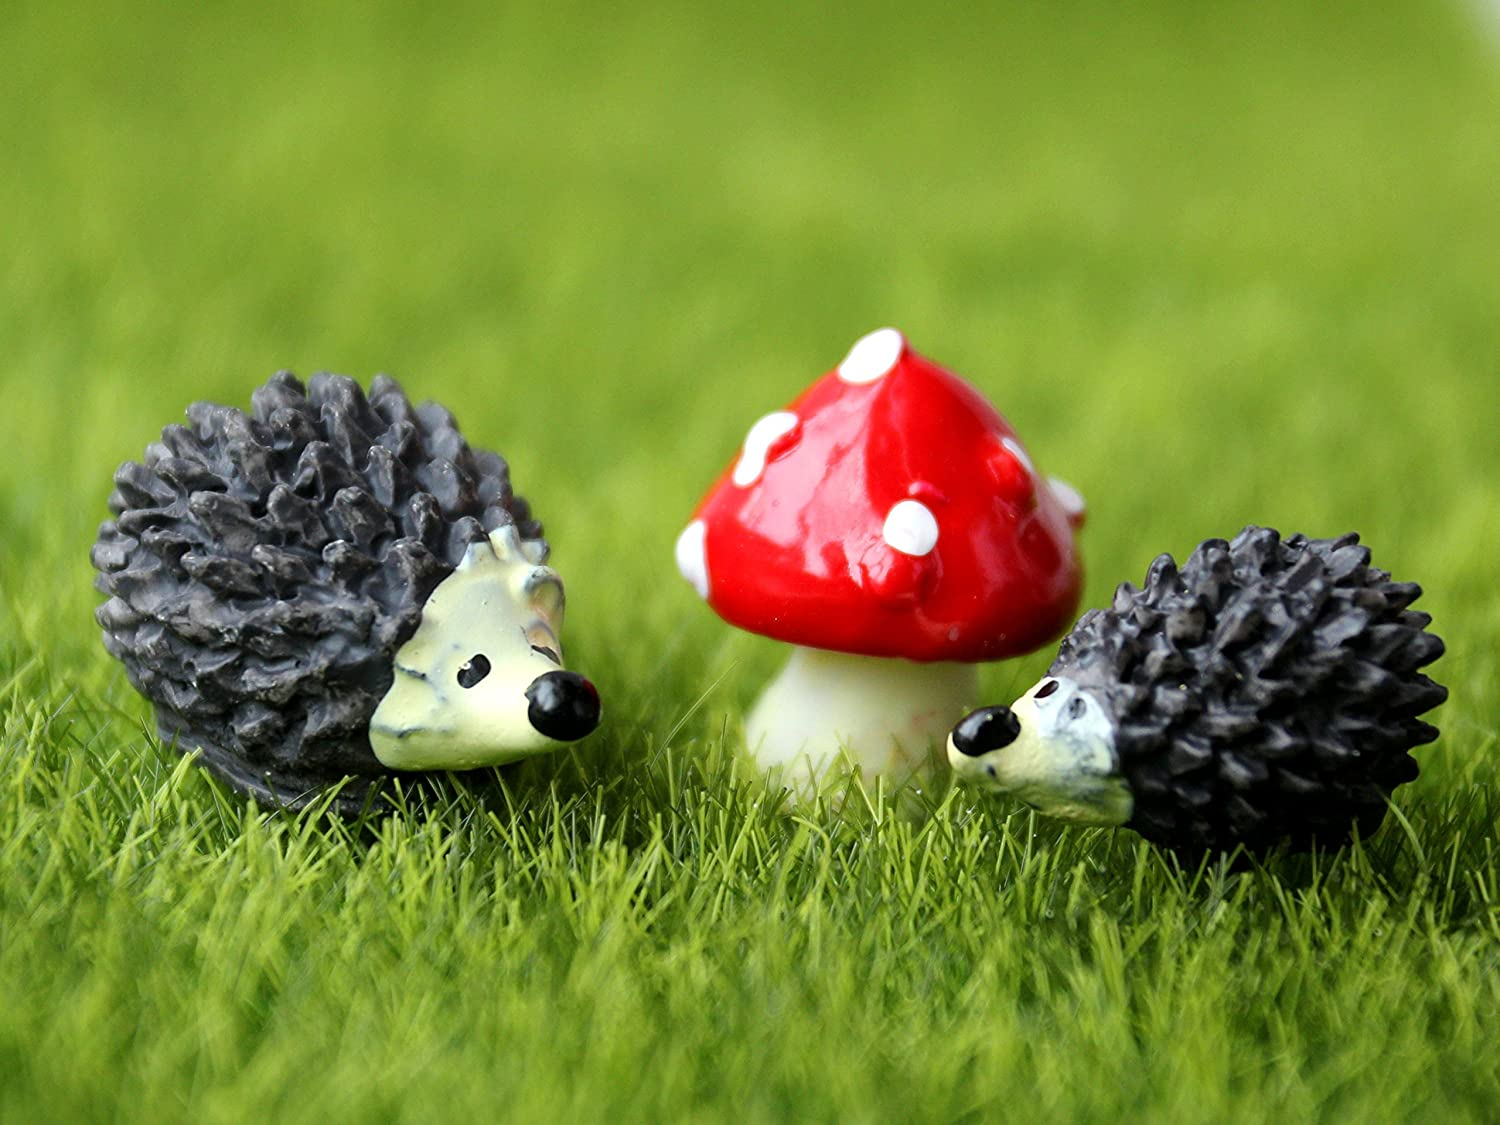 CJESLNA Miniature Garden Fairy Ornament Hedgehog & Mushroom Set